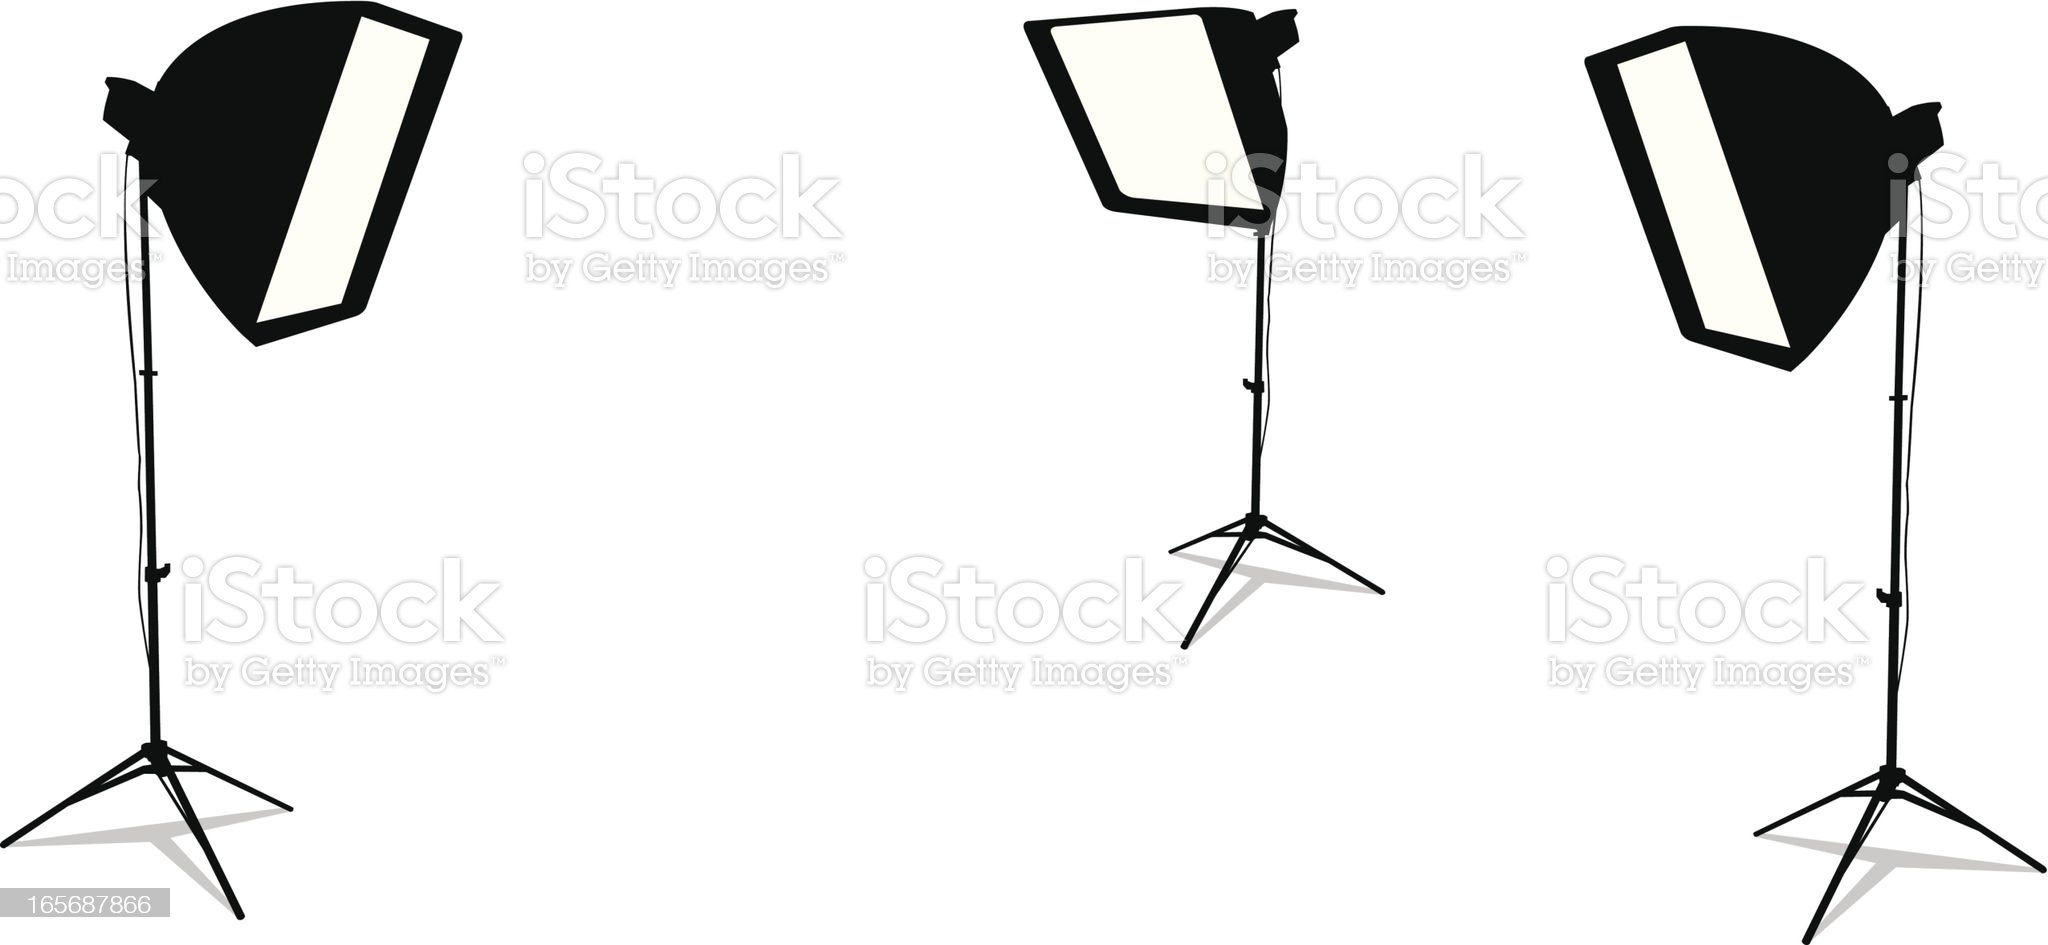 Three studio lamps isolated in a white background royalty-free stock vector art